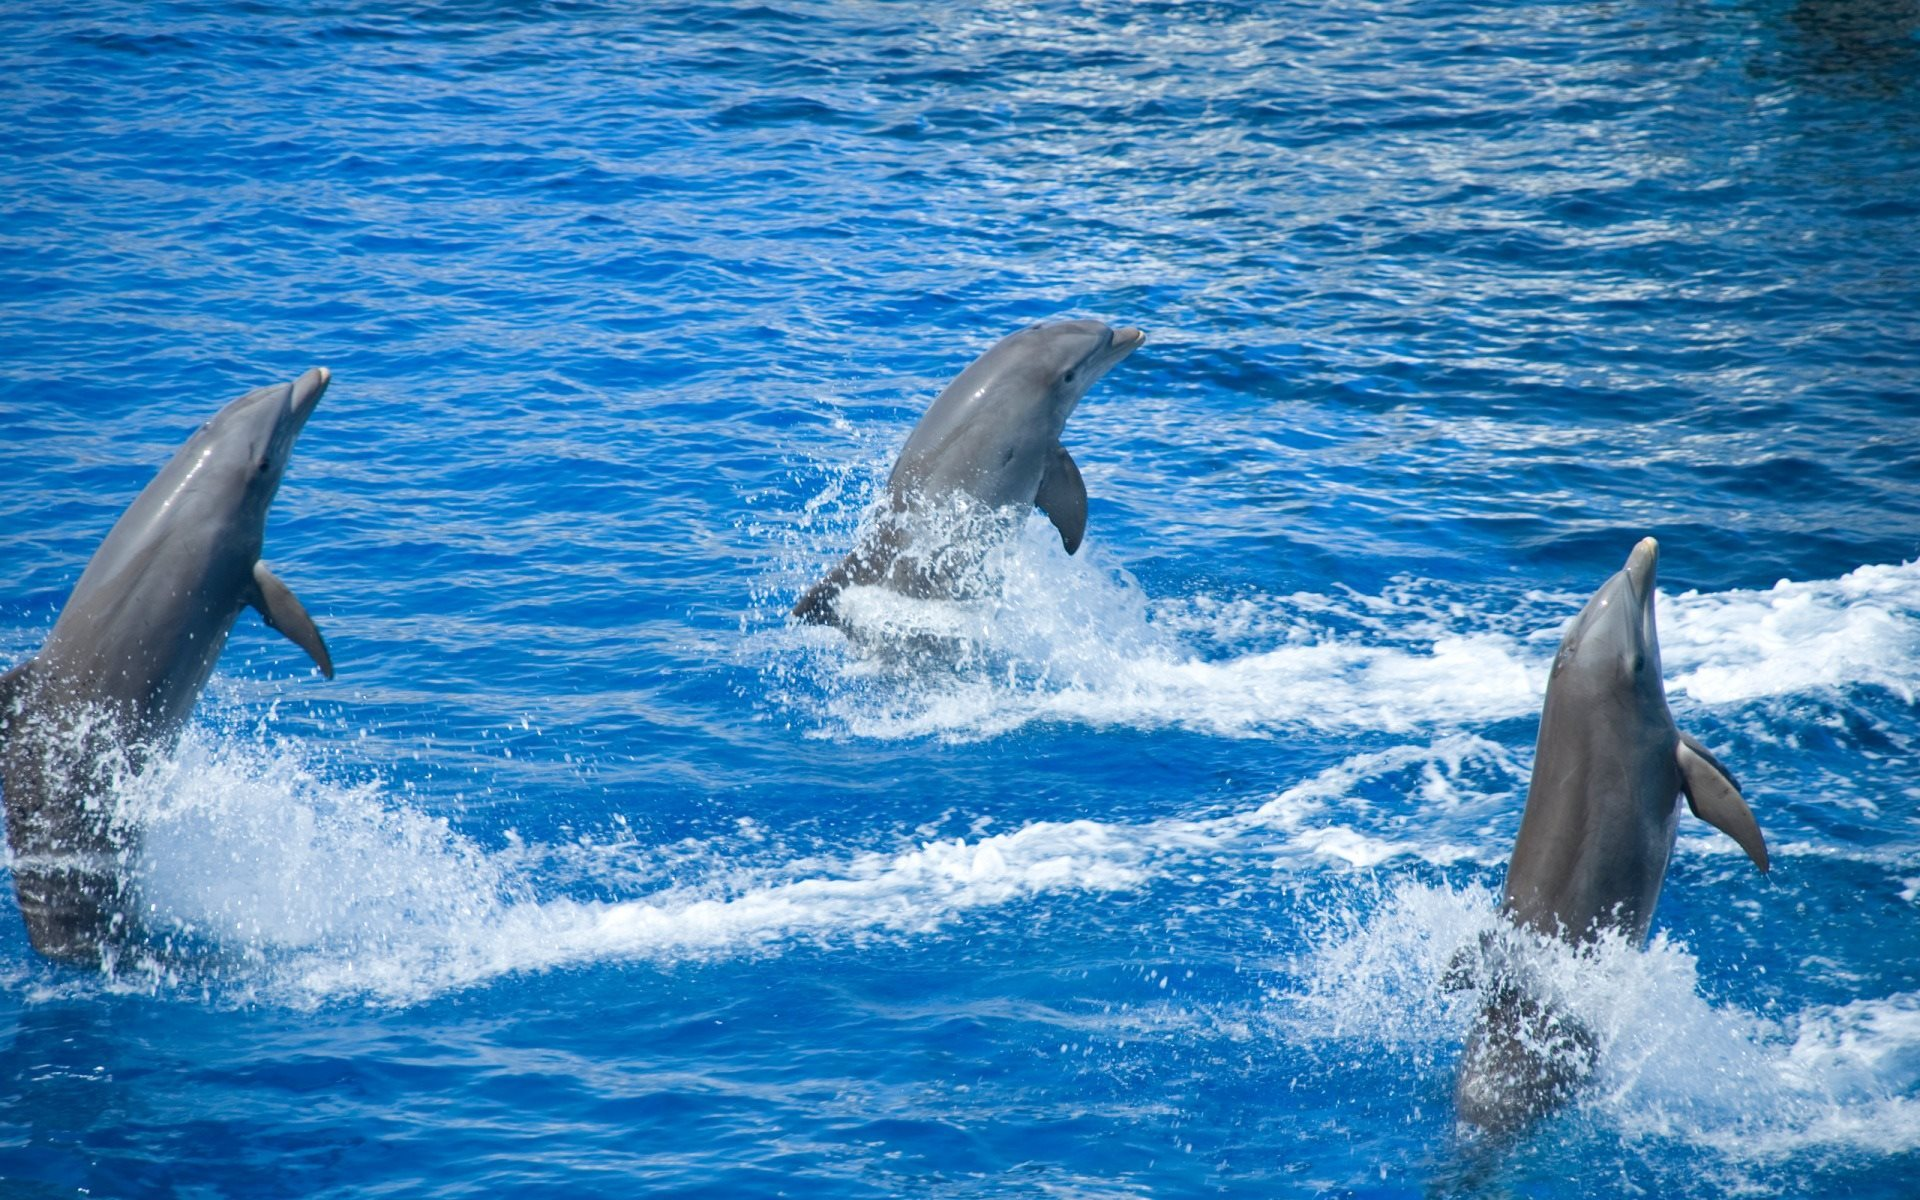 Dolphins, water, dolphinarium, swimming pool